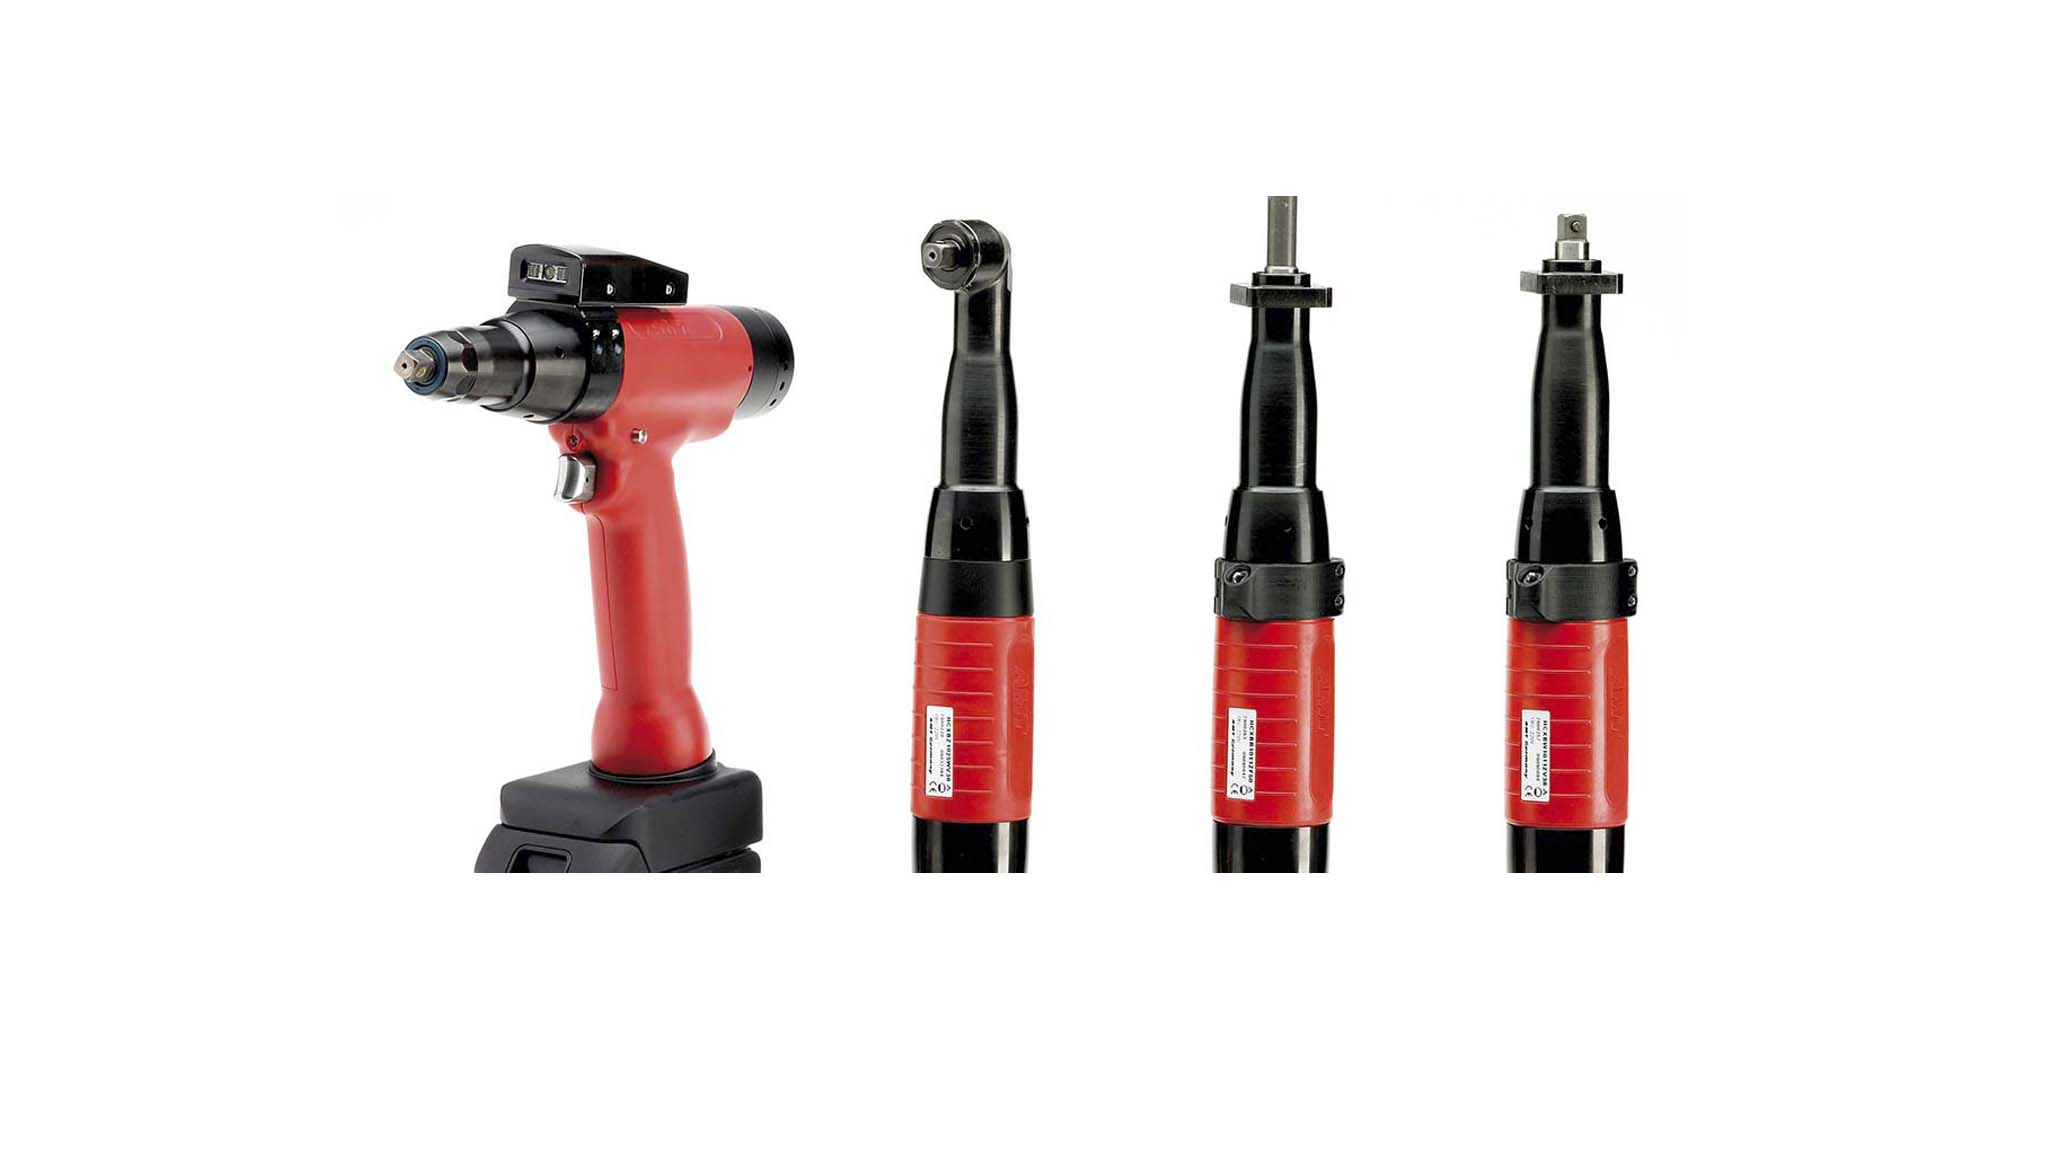 Supervised battery-powered handheld tools